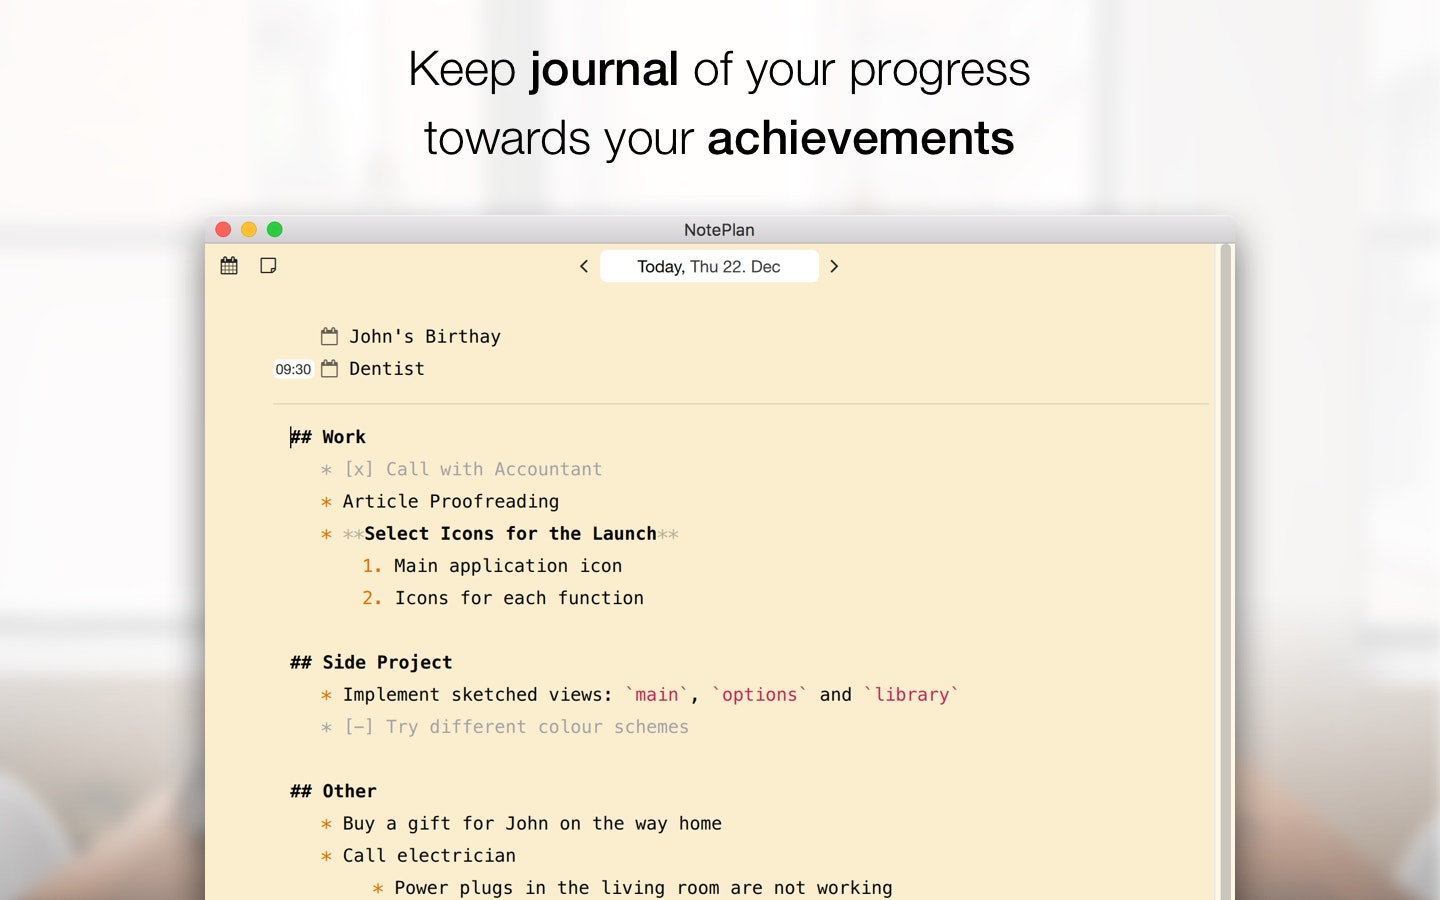 Keep journal of your progress towards your achievements